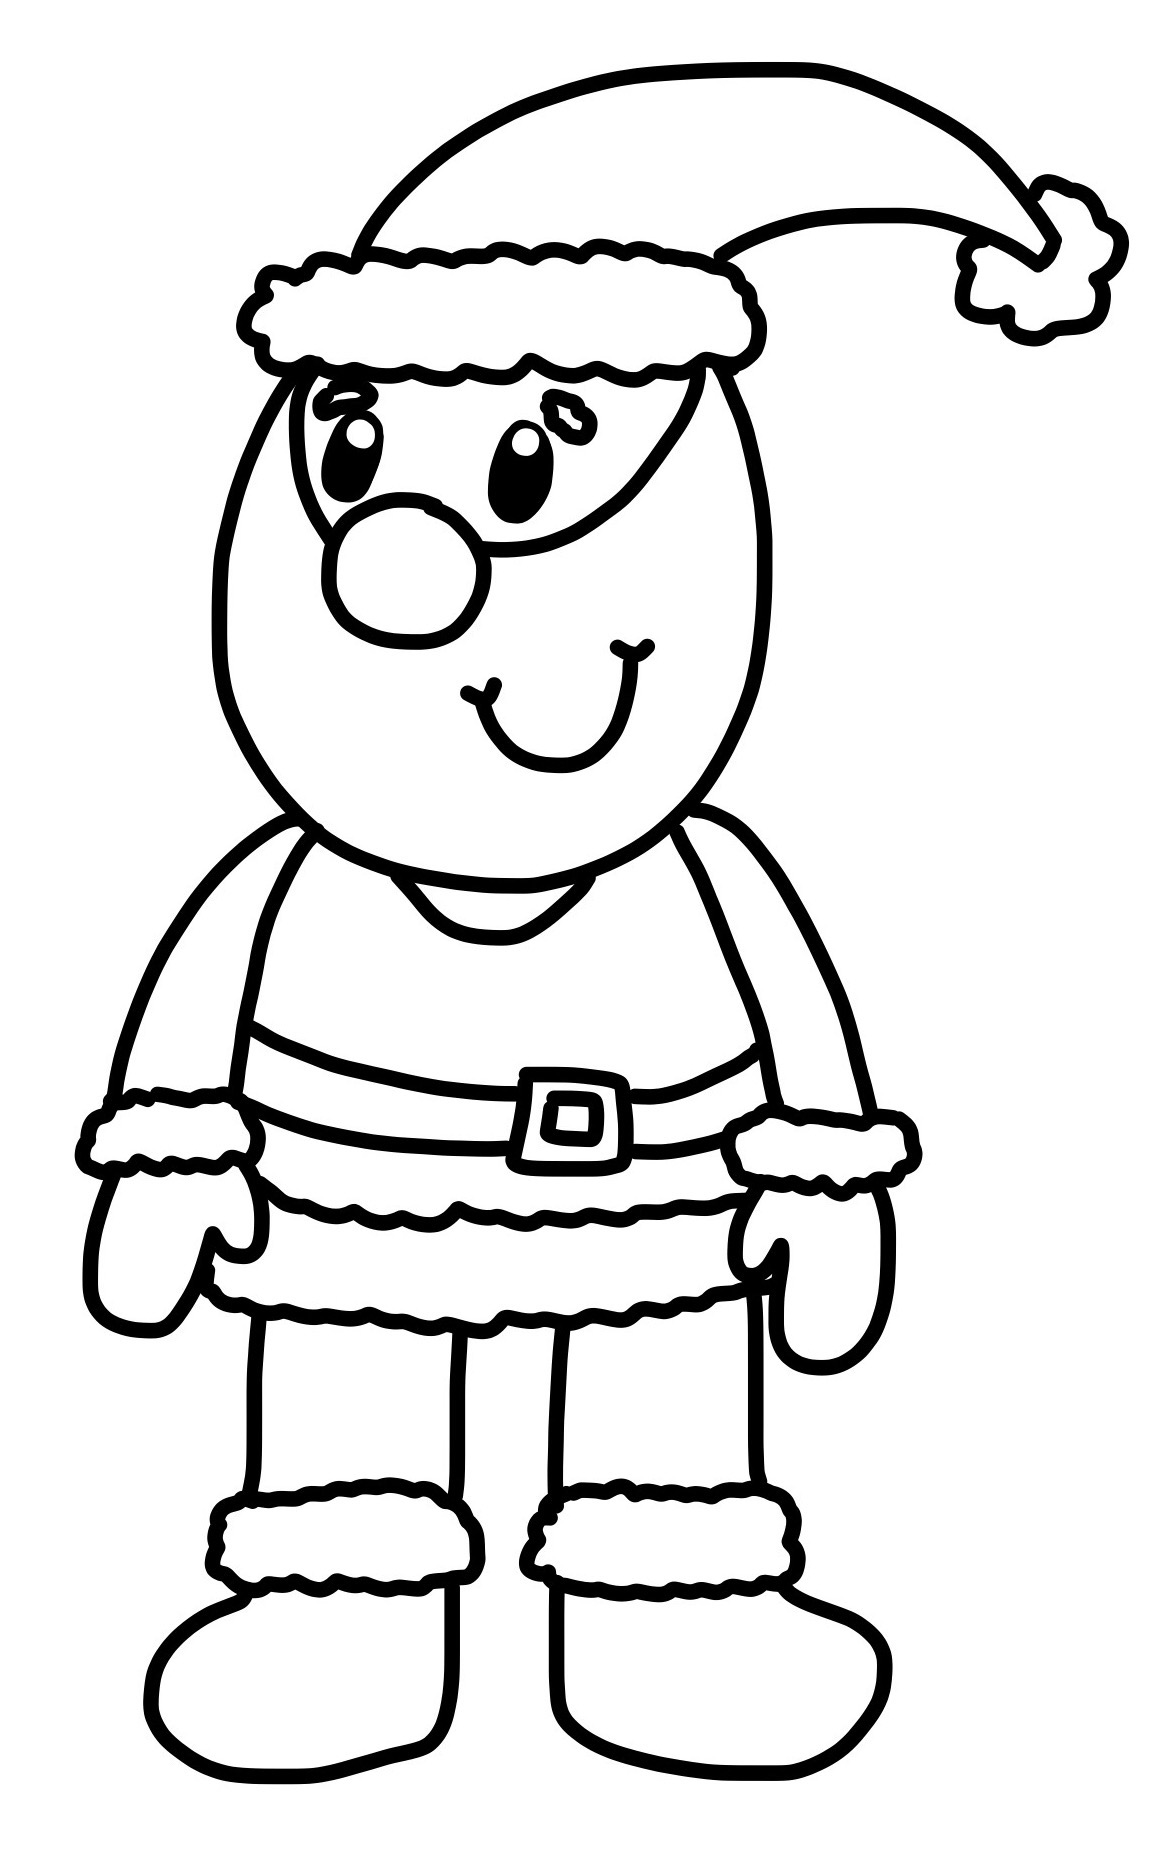 How to: Draw a Cartoon Father Christmas and COMPETITION